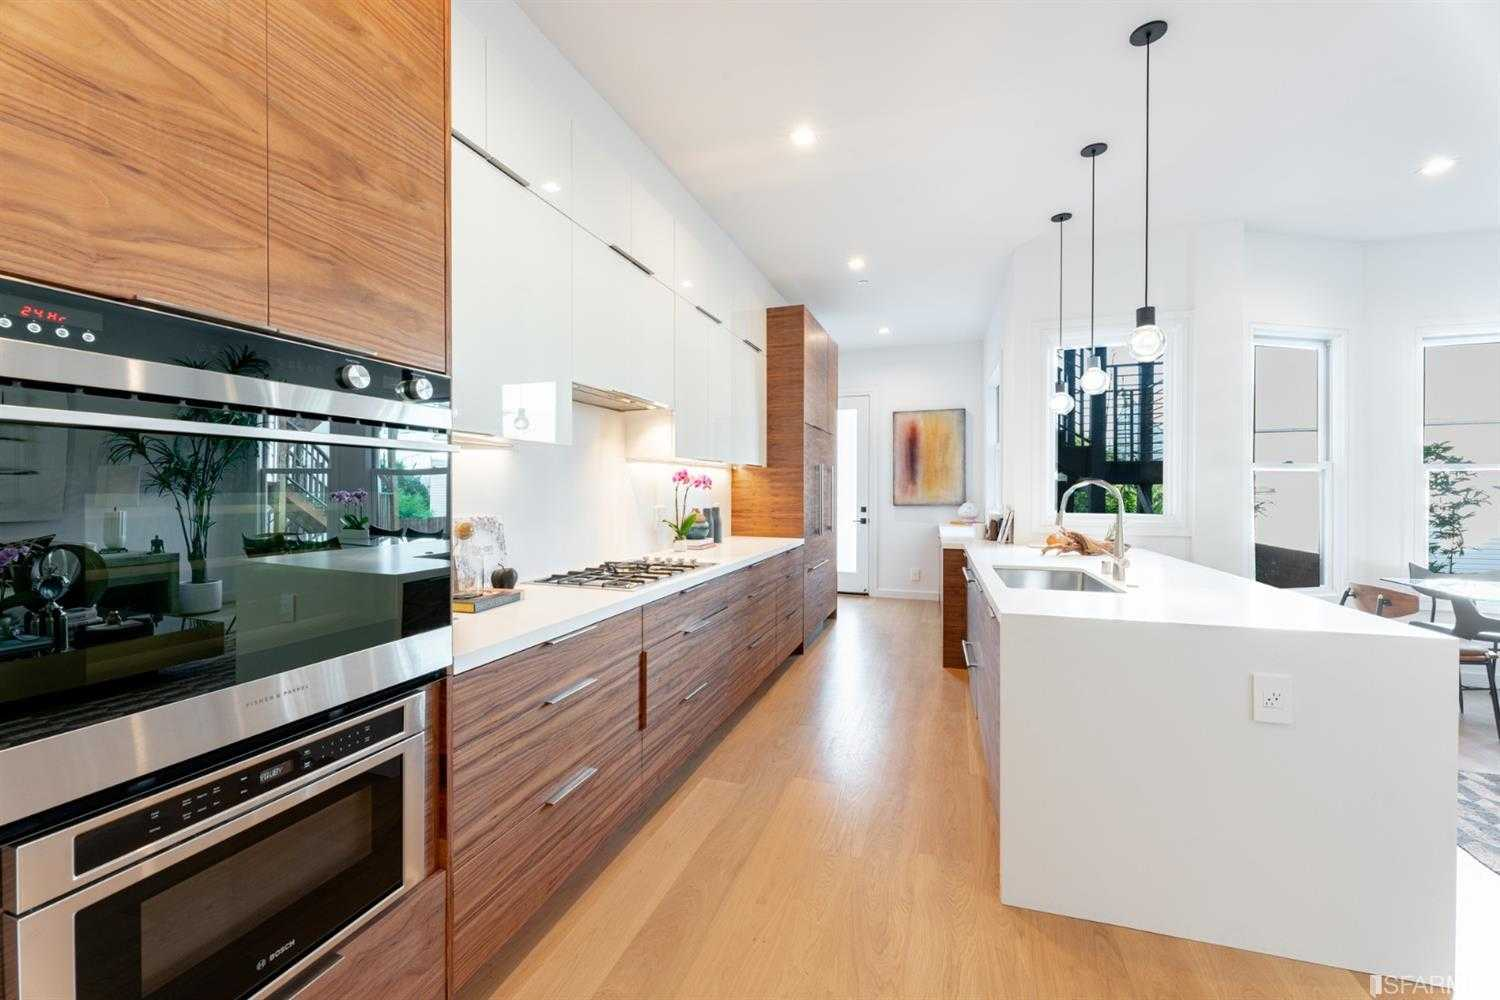 $1,949,000 - 3Br/2Ba -  for Sale in San Francisco